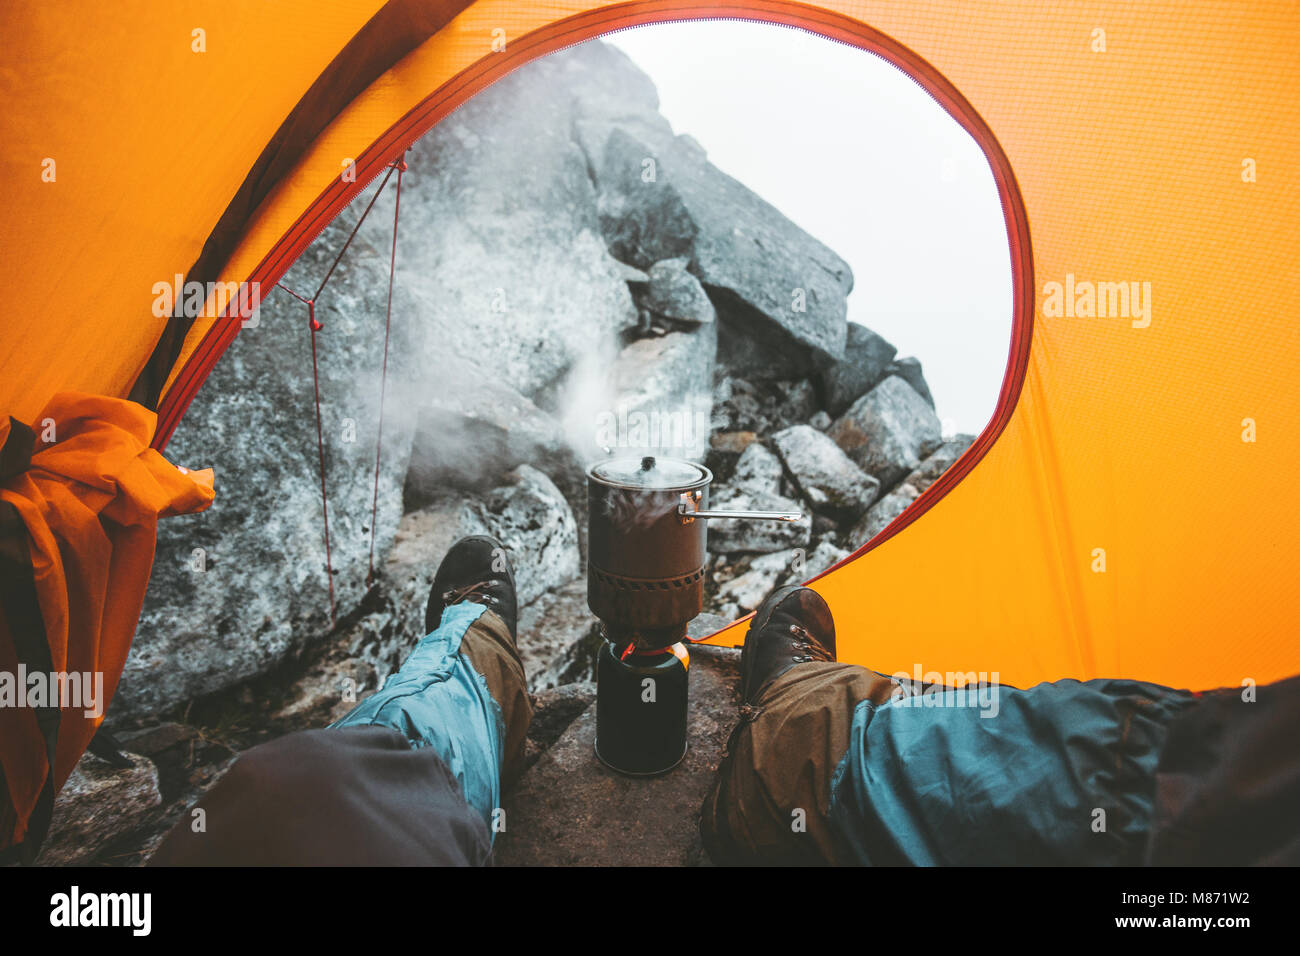 Man traveler cooking in pot on stove burner relaxing in camping tent Travel Lifestyle concept vacations outdoor - Stock Image